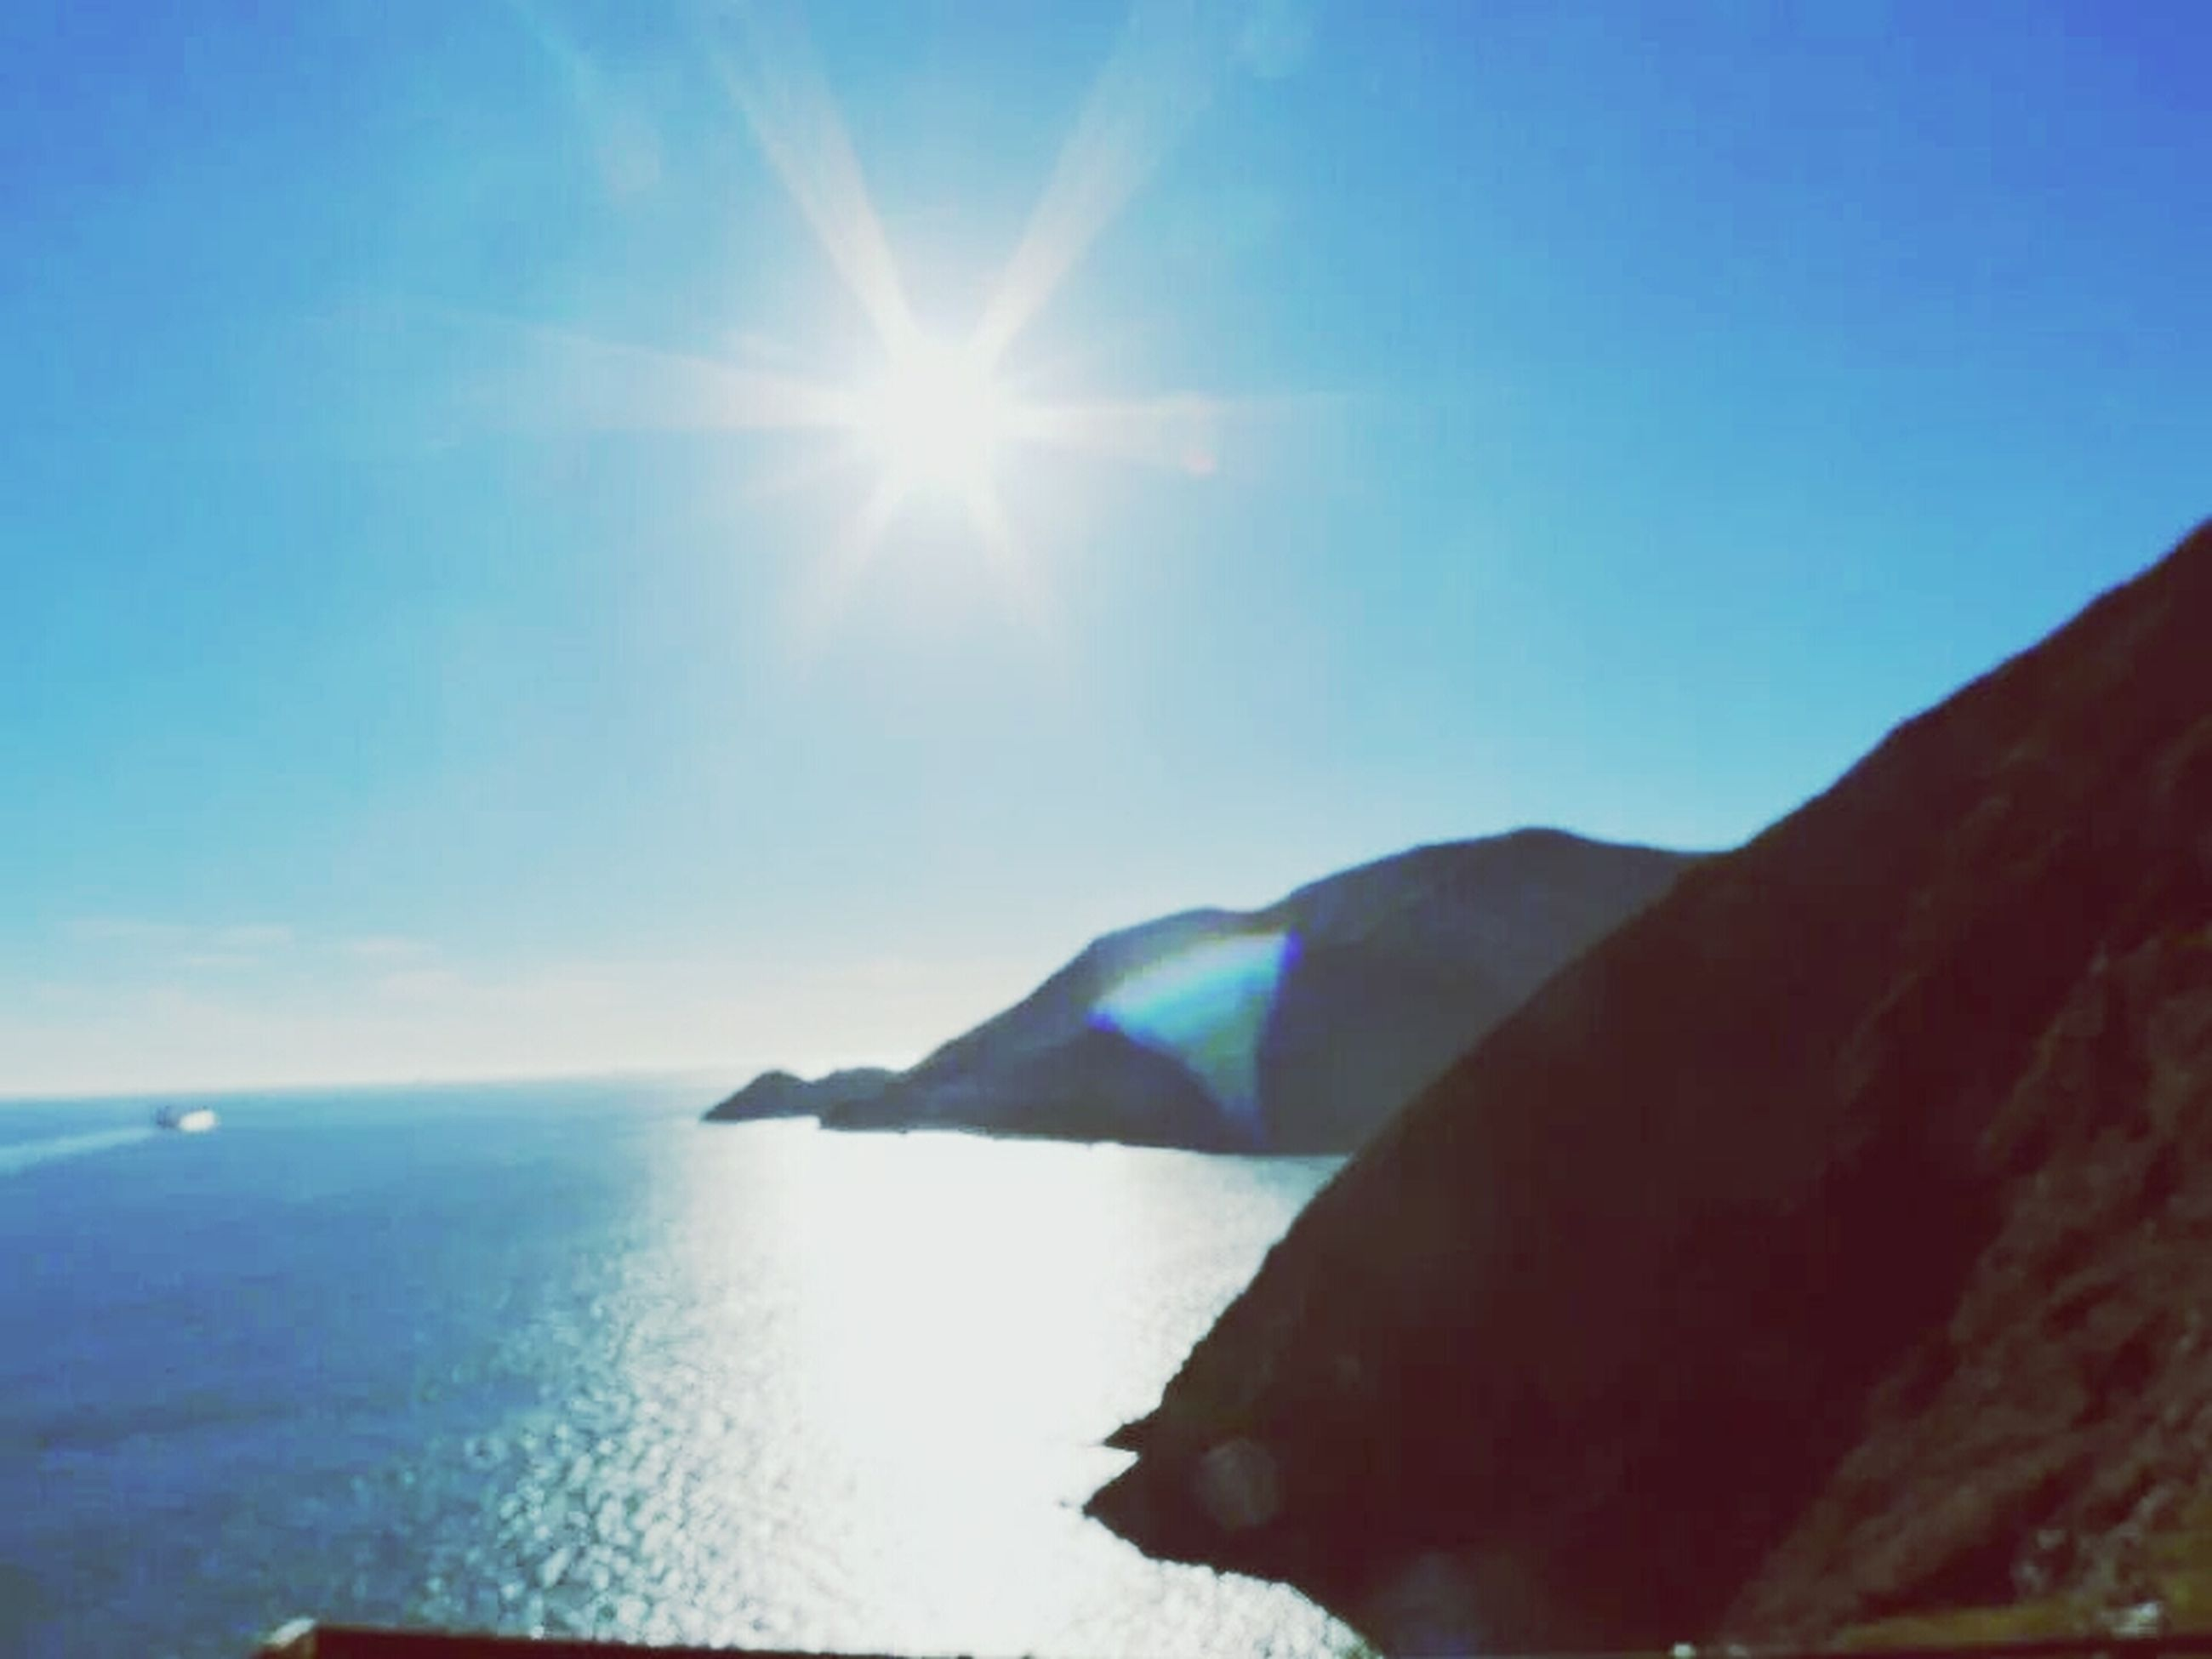 sea, water, sun, scenics, tranquil scene, sunbeam, beauty in nature, sunlight, tranquility, blue, horizon over water, nature, sky, lens flare, rock - object, idyllic, sunny, mountain, day, outdoors